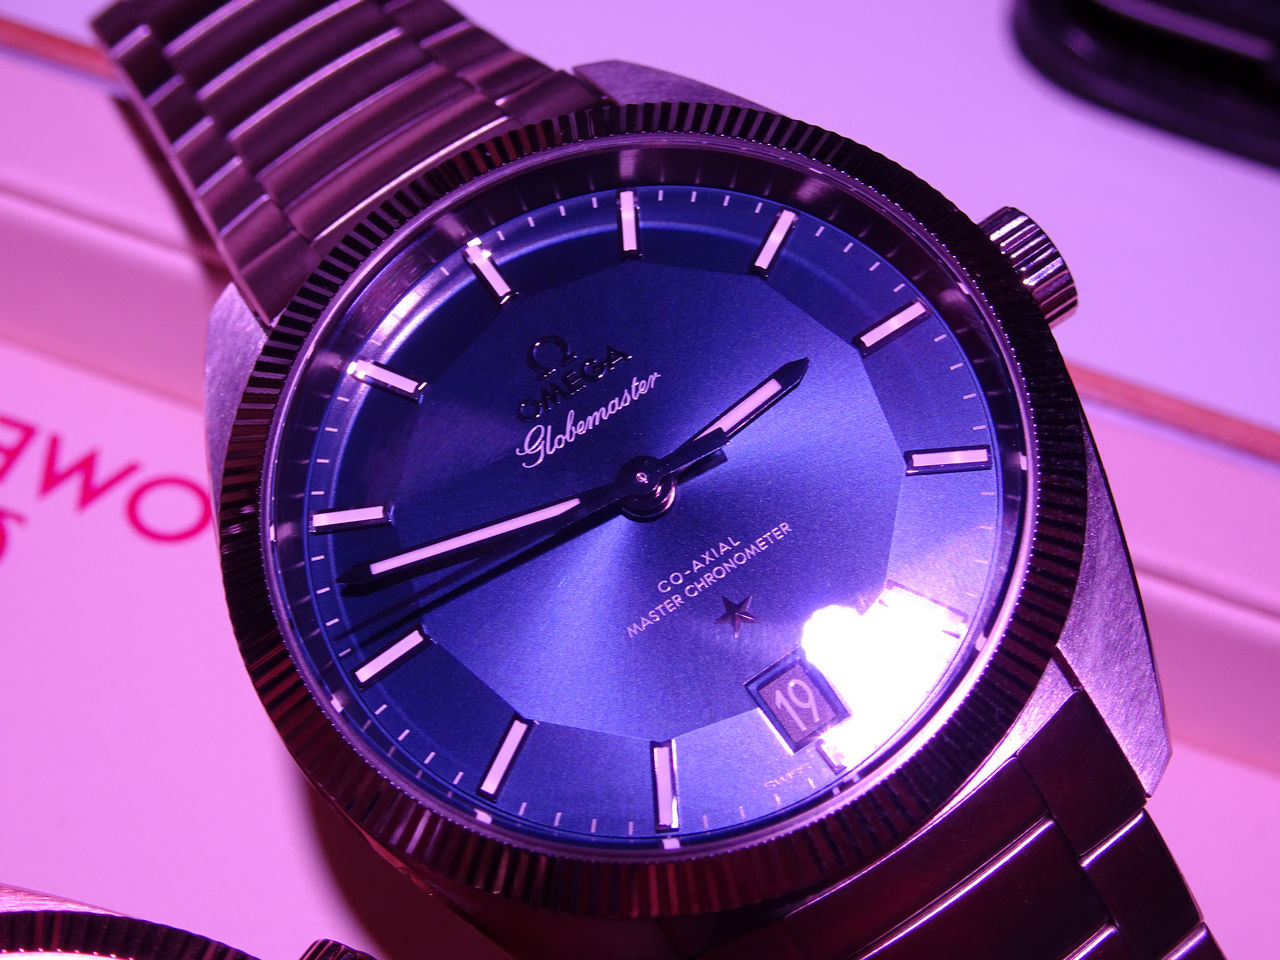 omega-globemaster-co-axial-master-chronometer-metas_0-10015